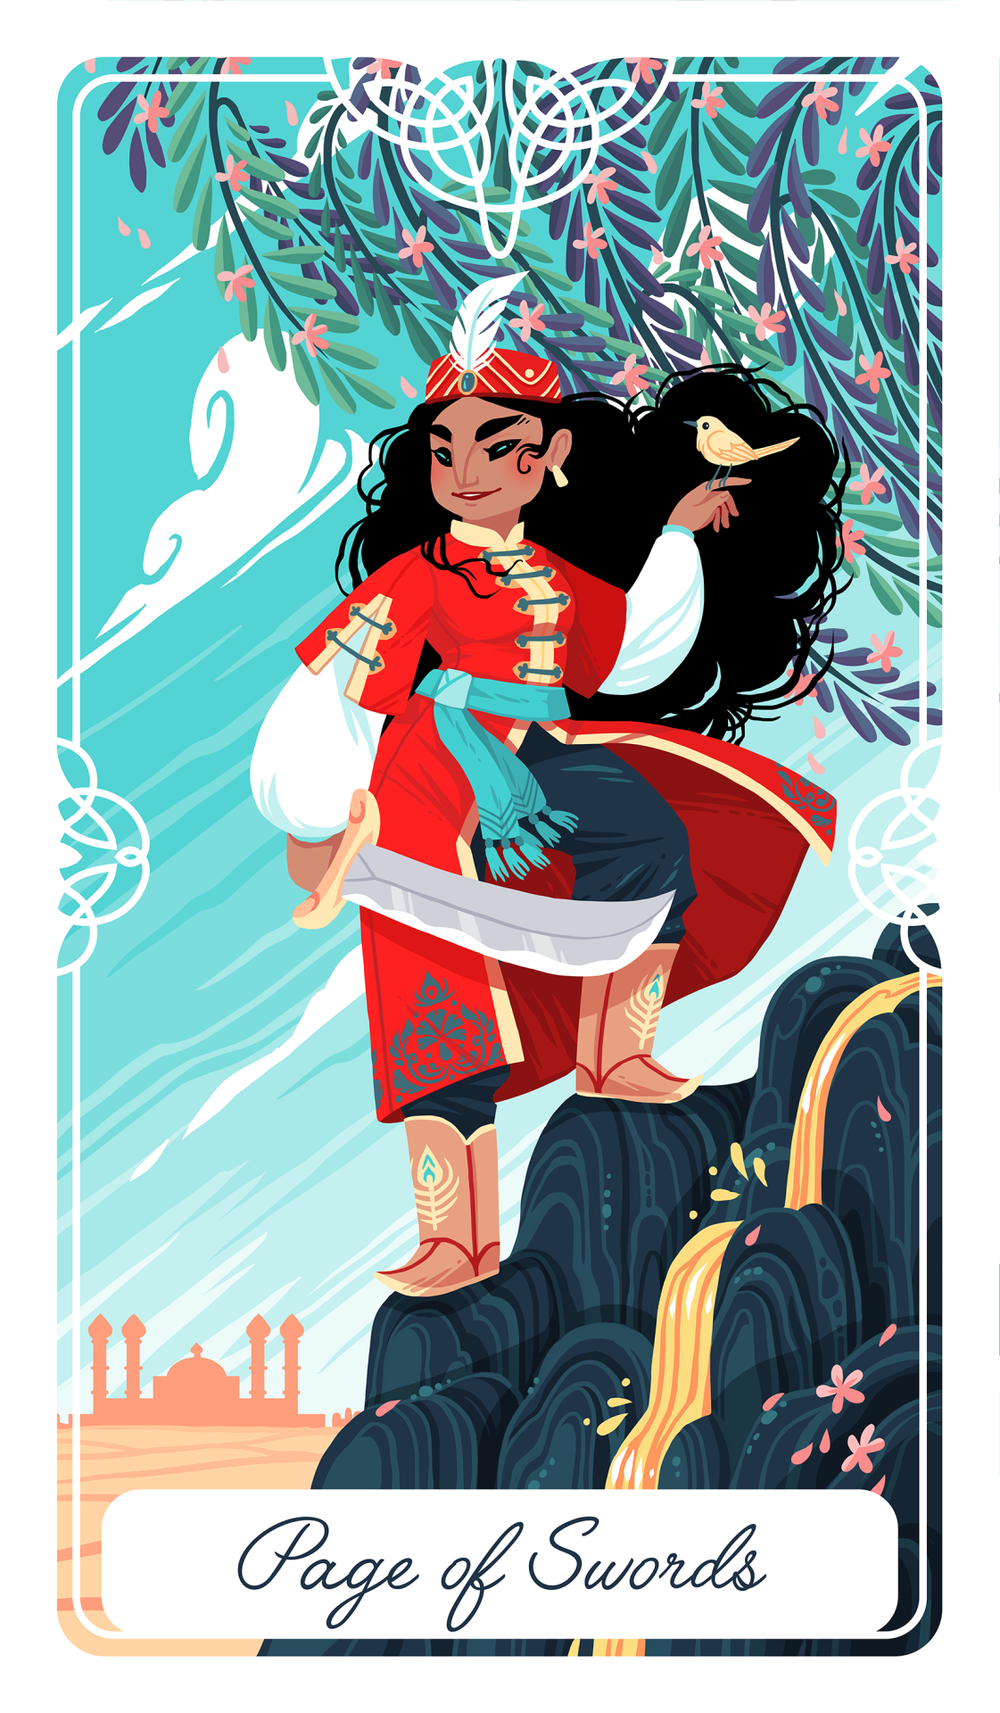 HUMAN DESIGN X TAROT - The always curious and full of new ideas Page of Swords embodies the energy of Gate 17. So ready to jump on the next idea, she first needs to wait for the correct timing.Tarot art: Fairy Tale Tarot